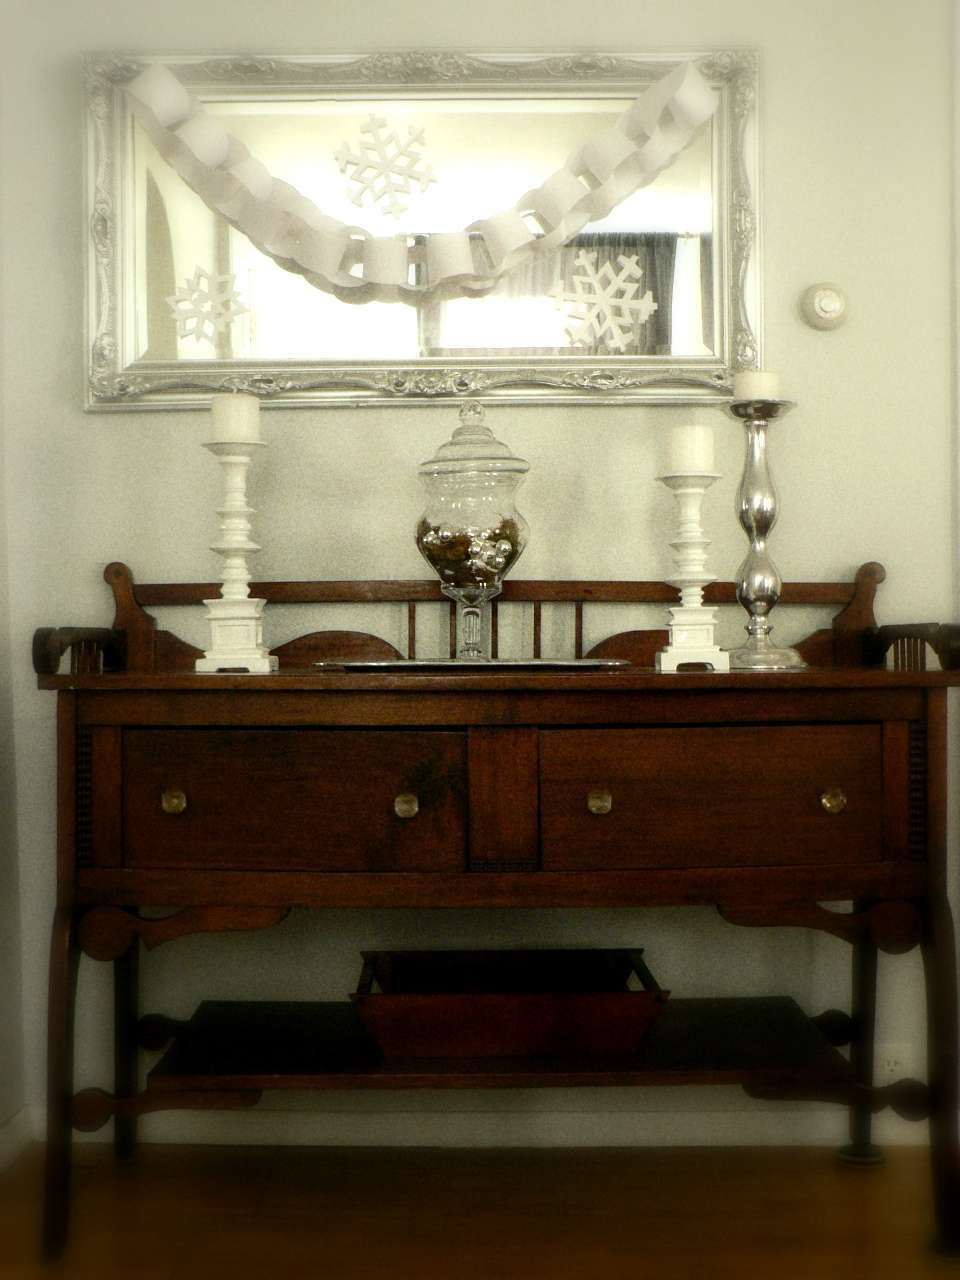 Glamorous Small Dining Room Sideboard Images – Best Image Engine With Regard To Dining Room Sideboards And Buffets (View 4 of 20)